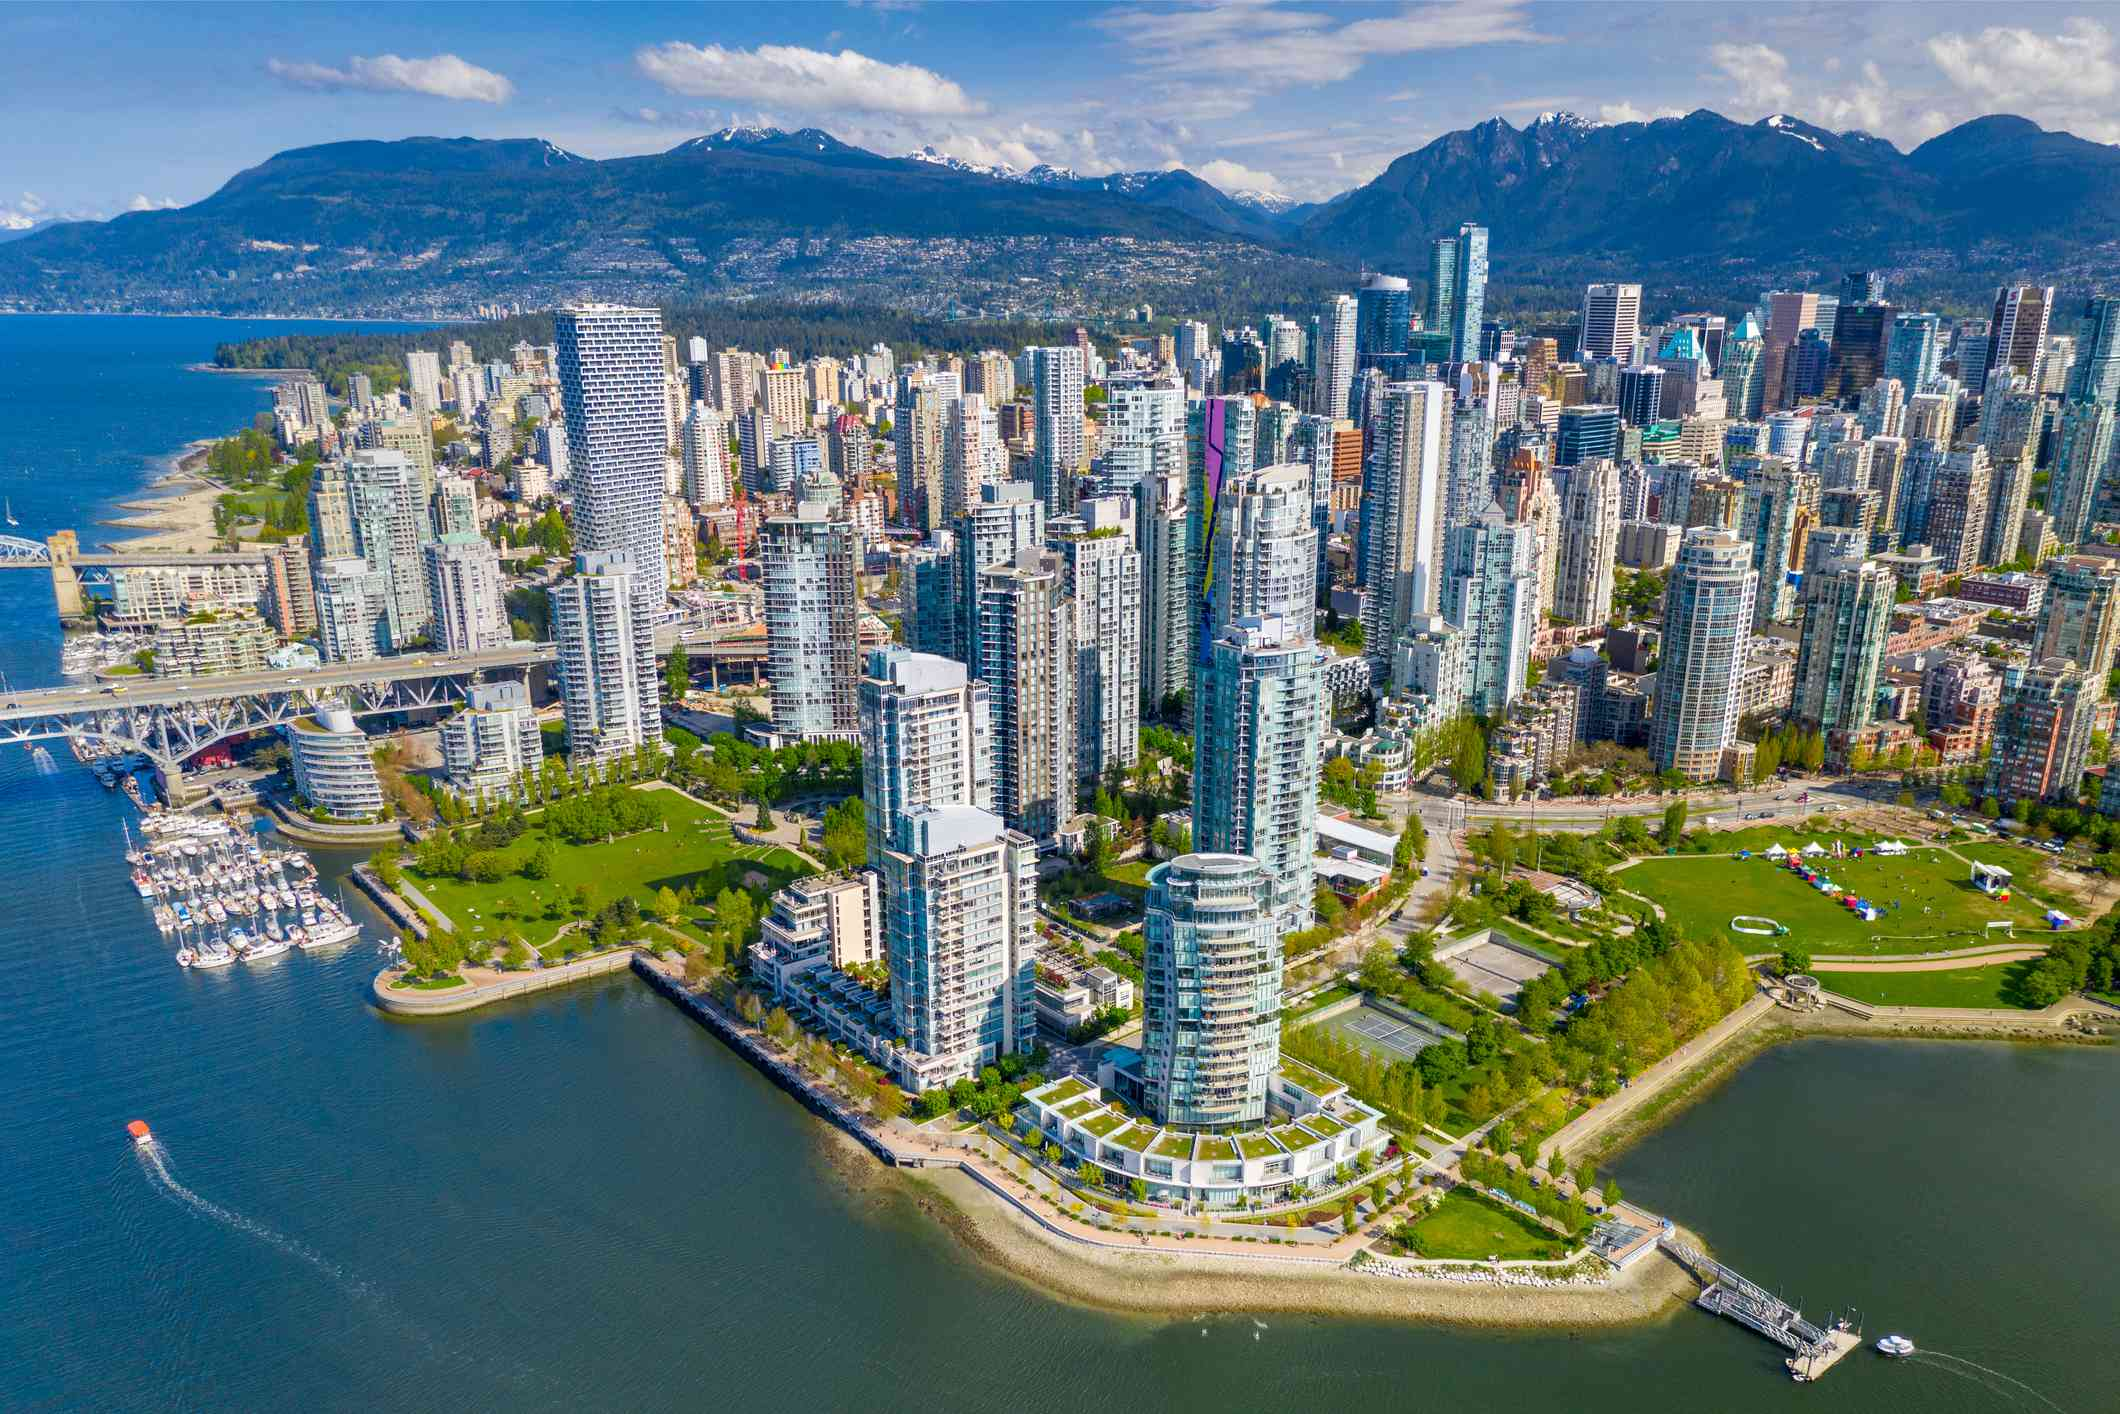 Downtown Vancouver, British Columbia, Canada